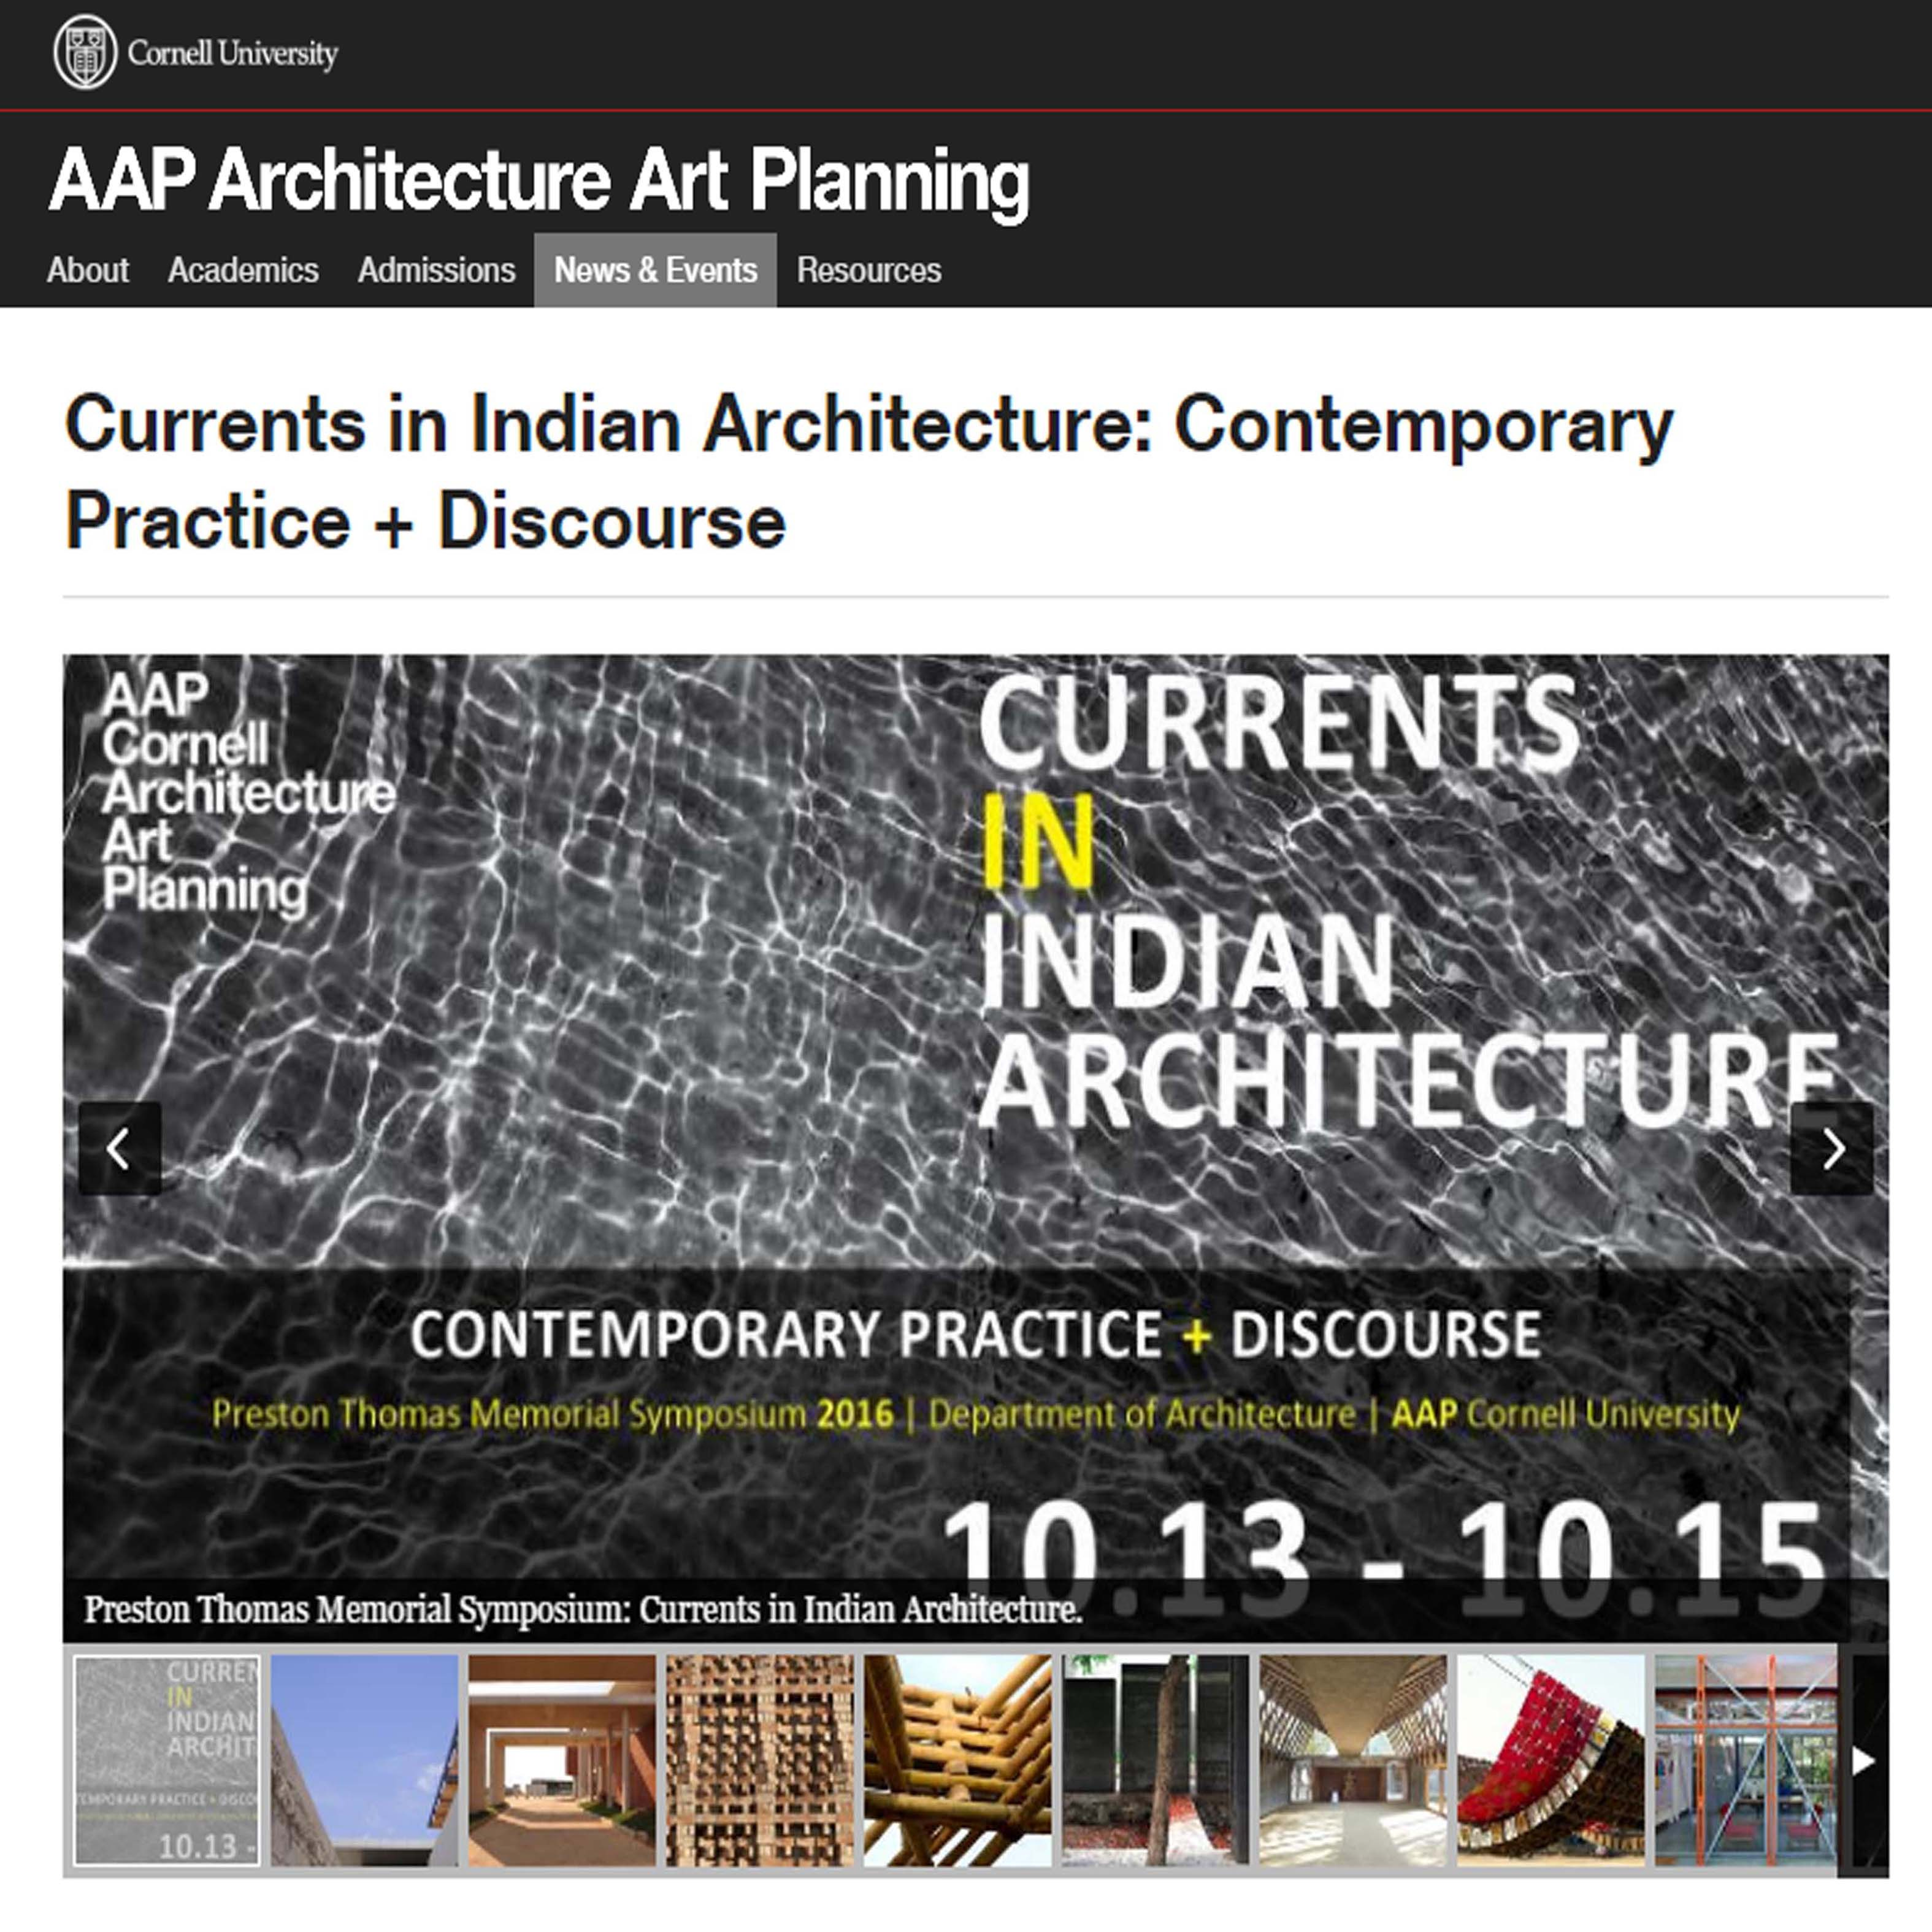 Currents in Indian Architecture: Contemporary Practice + Discourse, AAP, Cornell University, October 2016